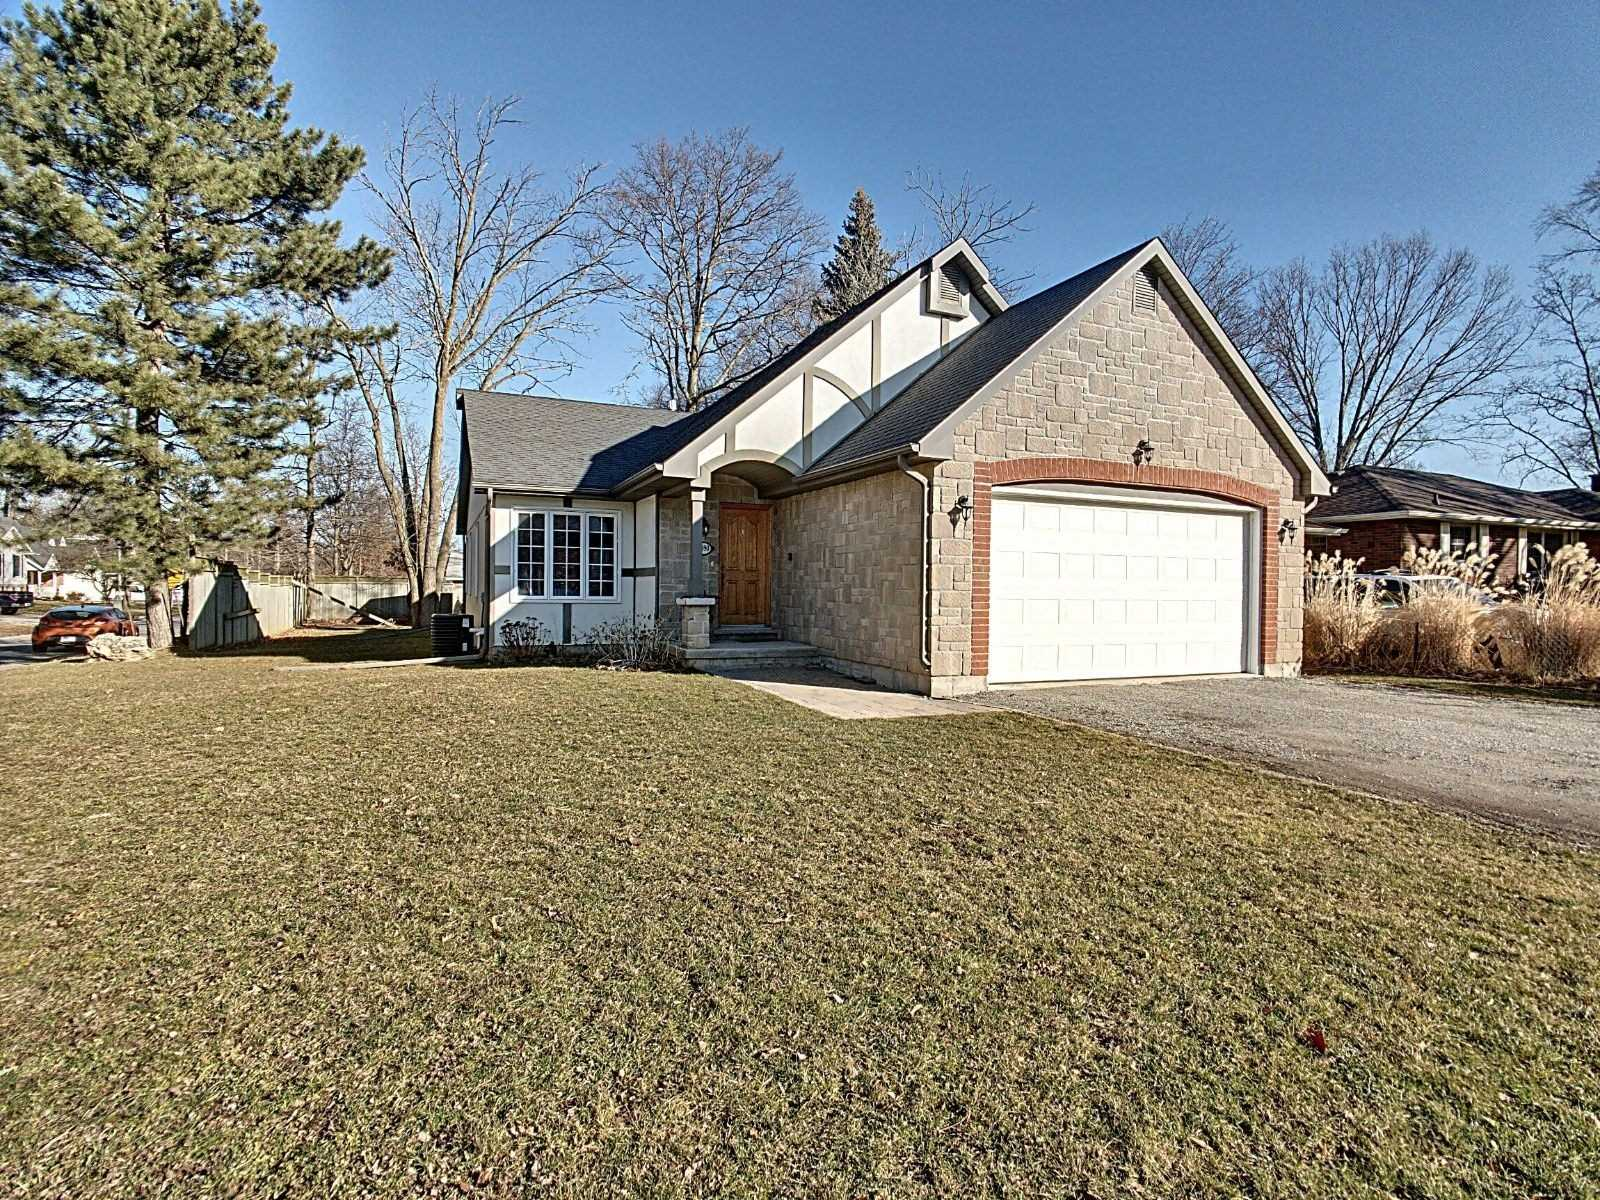 pictures of house for sale MLS: X4717131 located at 1890 Lakeshore Rd, Niagara-on-the-Lake L0S1J0